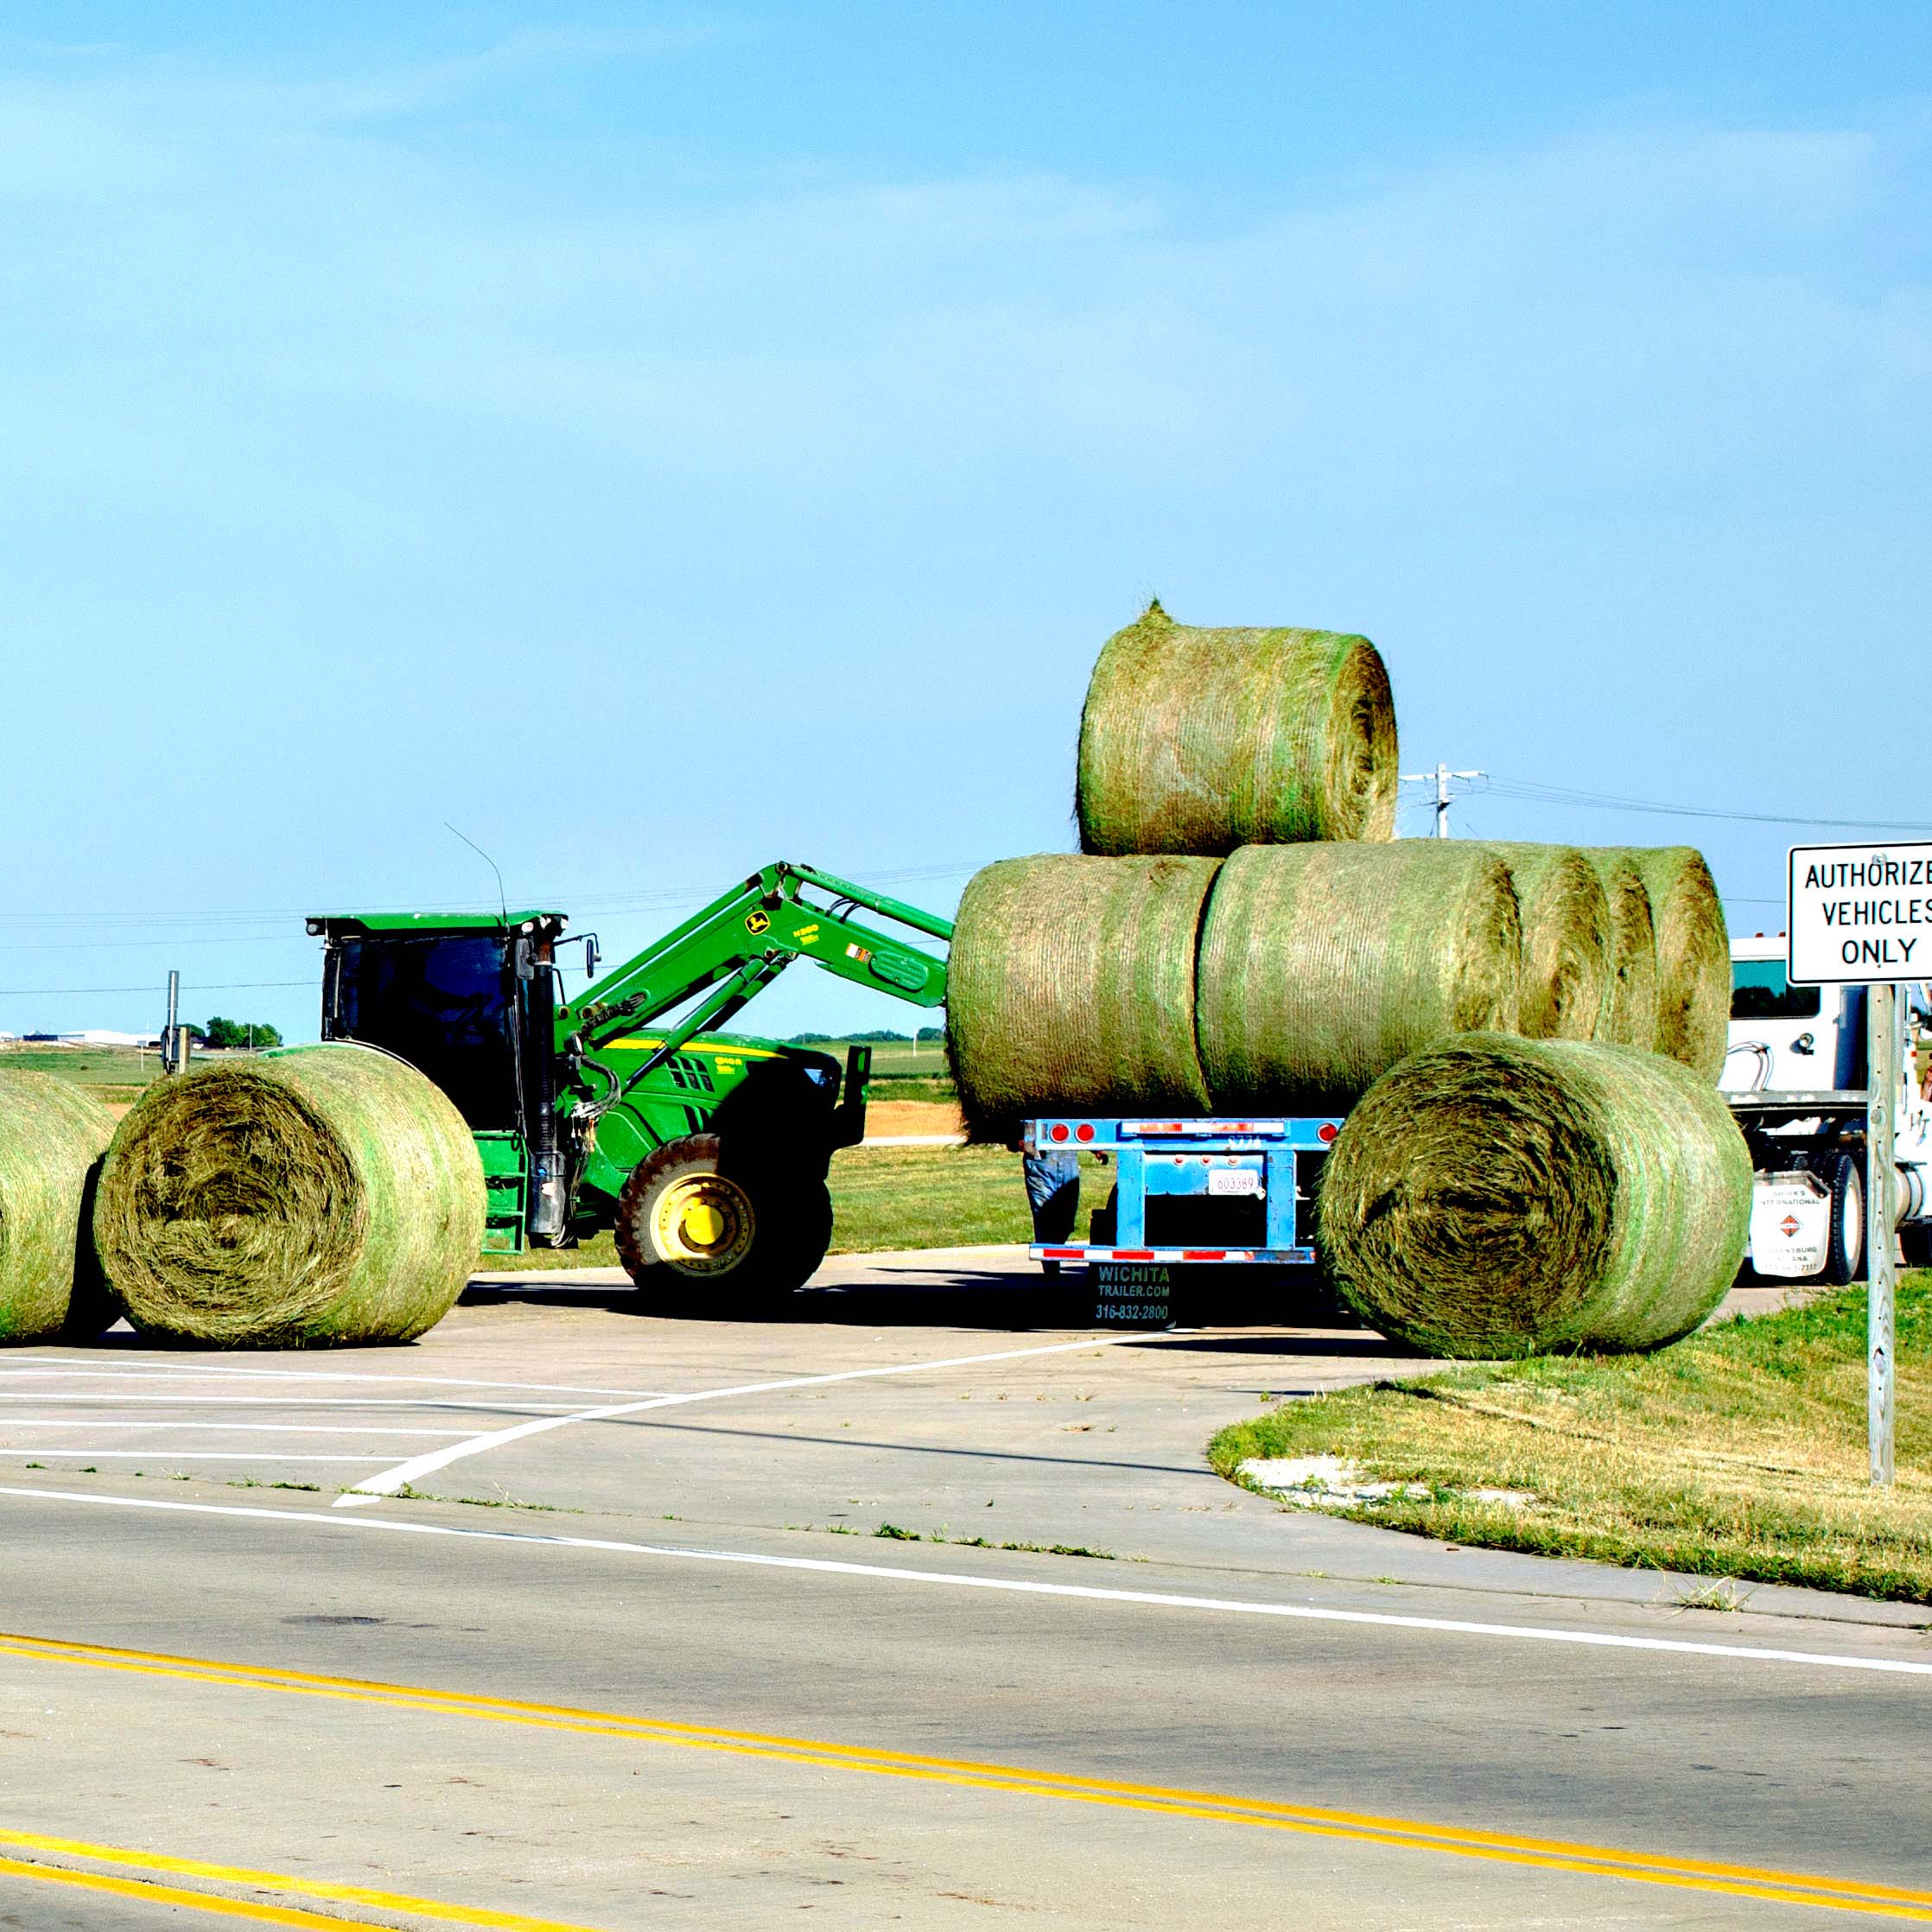 Fill-in quarterback Brooks Garners searches for an open Hillsboro receiver as Connor Morey takes aim on a would-be Haven defender during early action in the Trojans' 14-13 loss to the Wildcats at Haven.